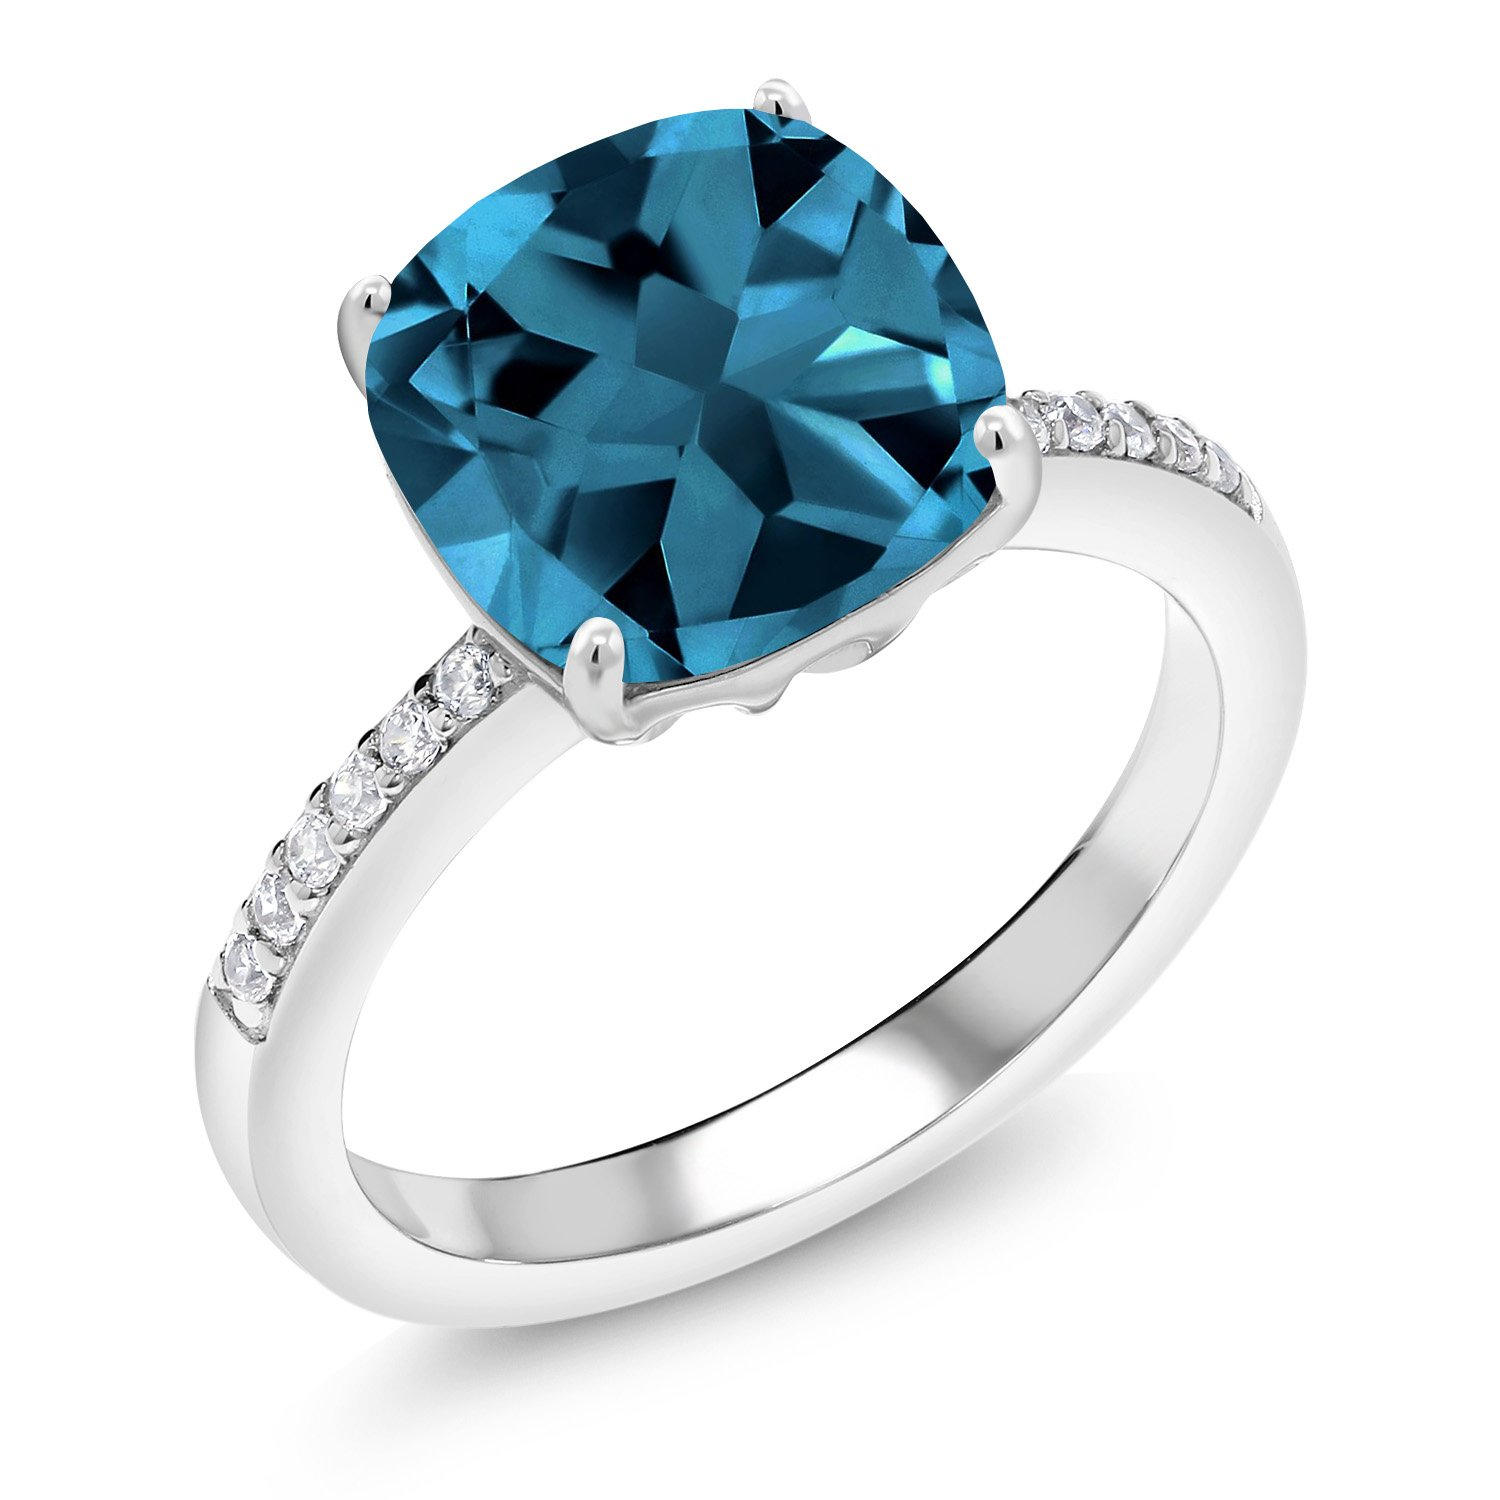 Gem Stone King 925 Sterling Silver London Blue Topaz Women S Engagement Ring 4 47 Cttw Cushion Cut Gemstone Birthstone Available 5 6 7 8 9